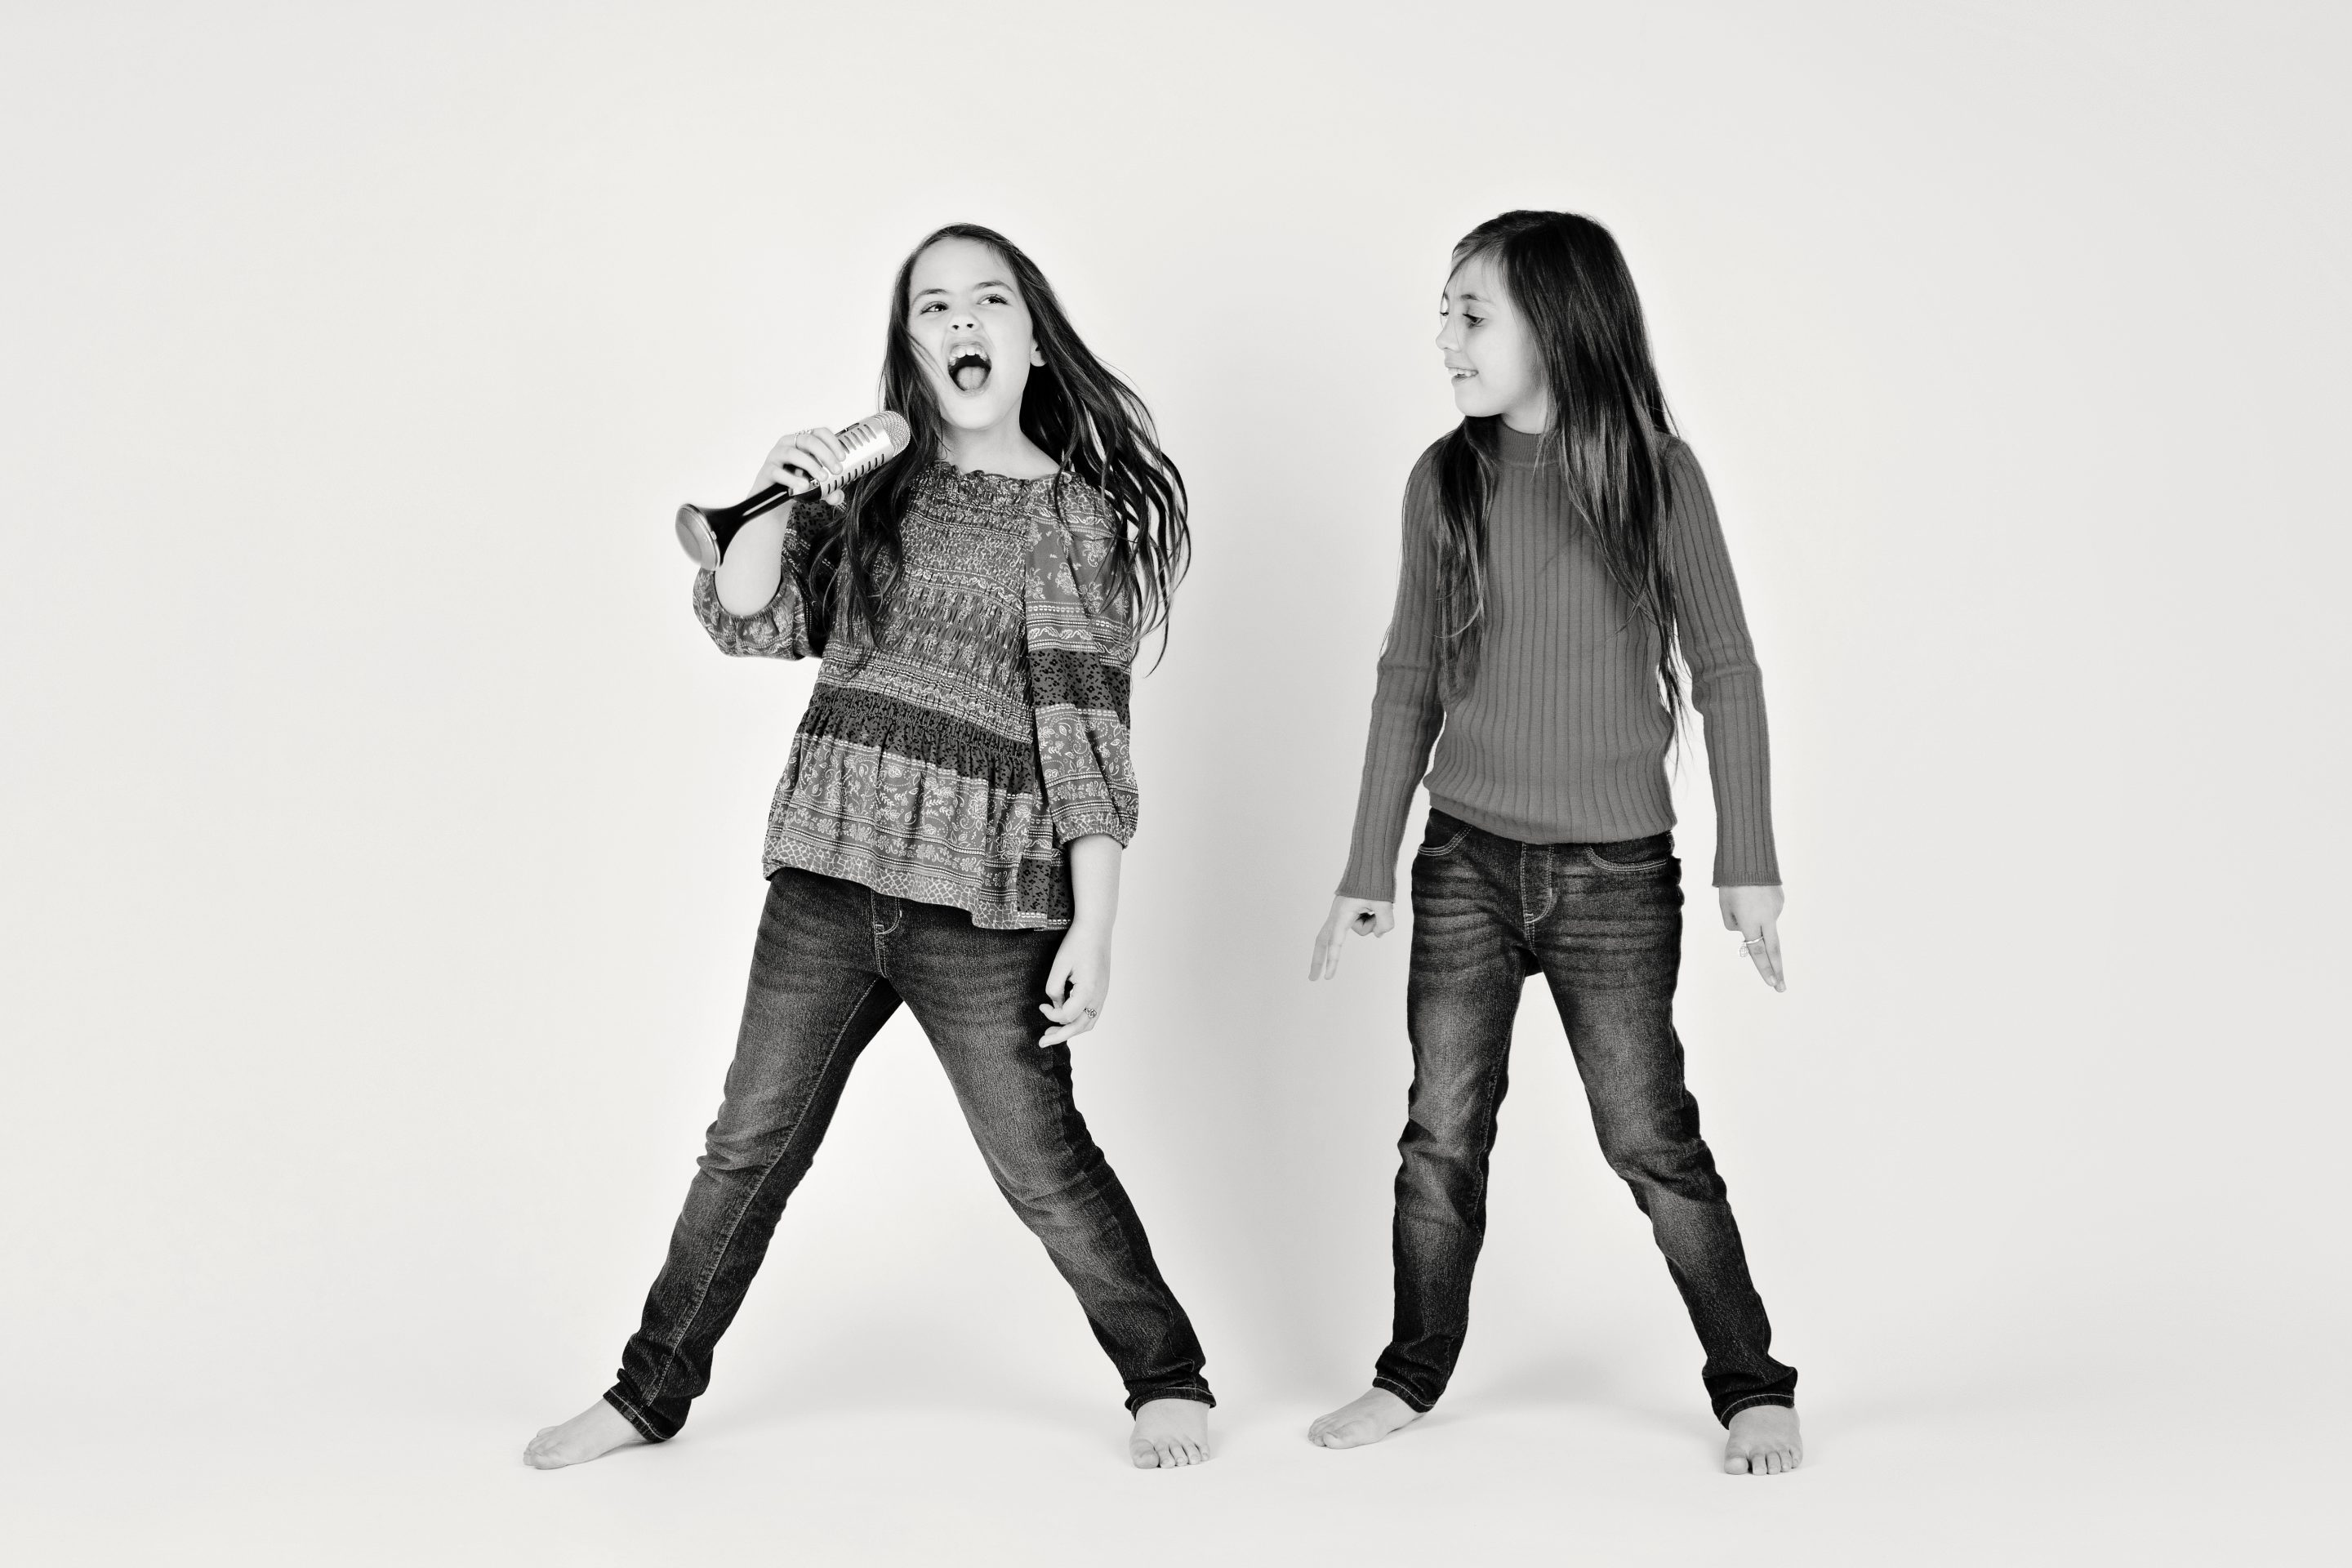 Sisters jumping around and having a blast in the studio